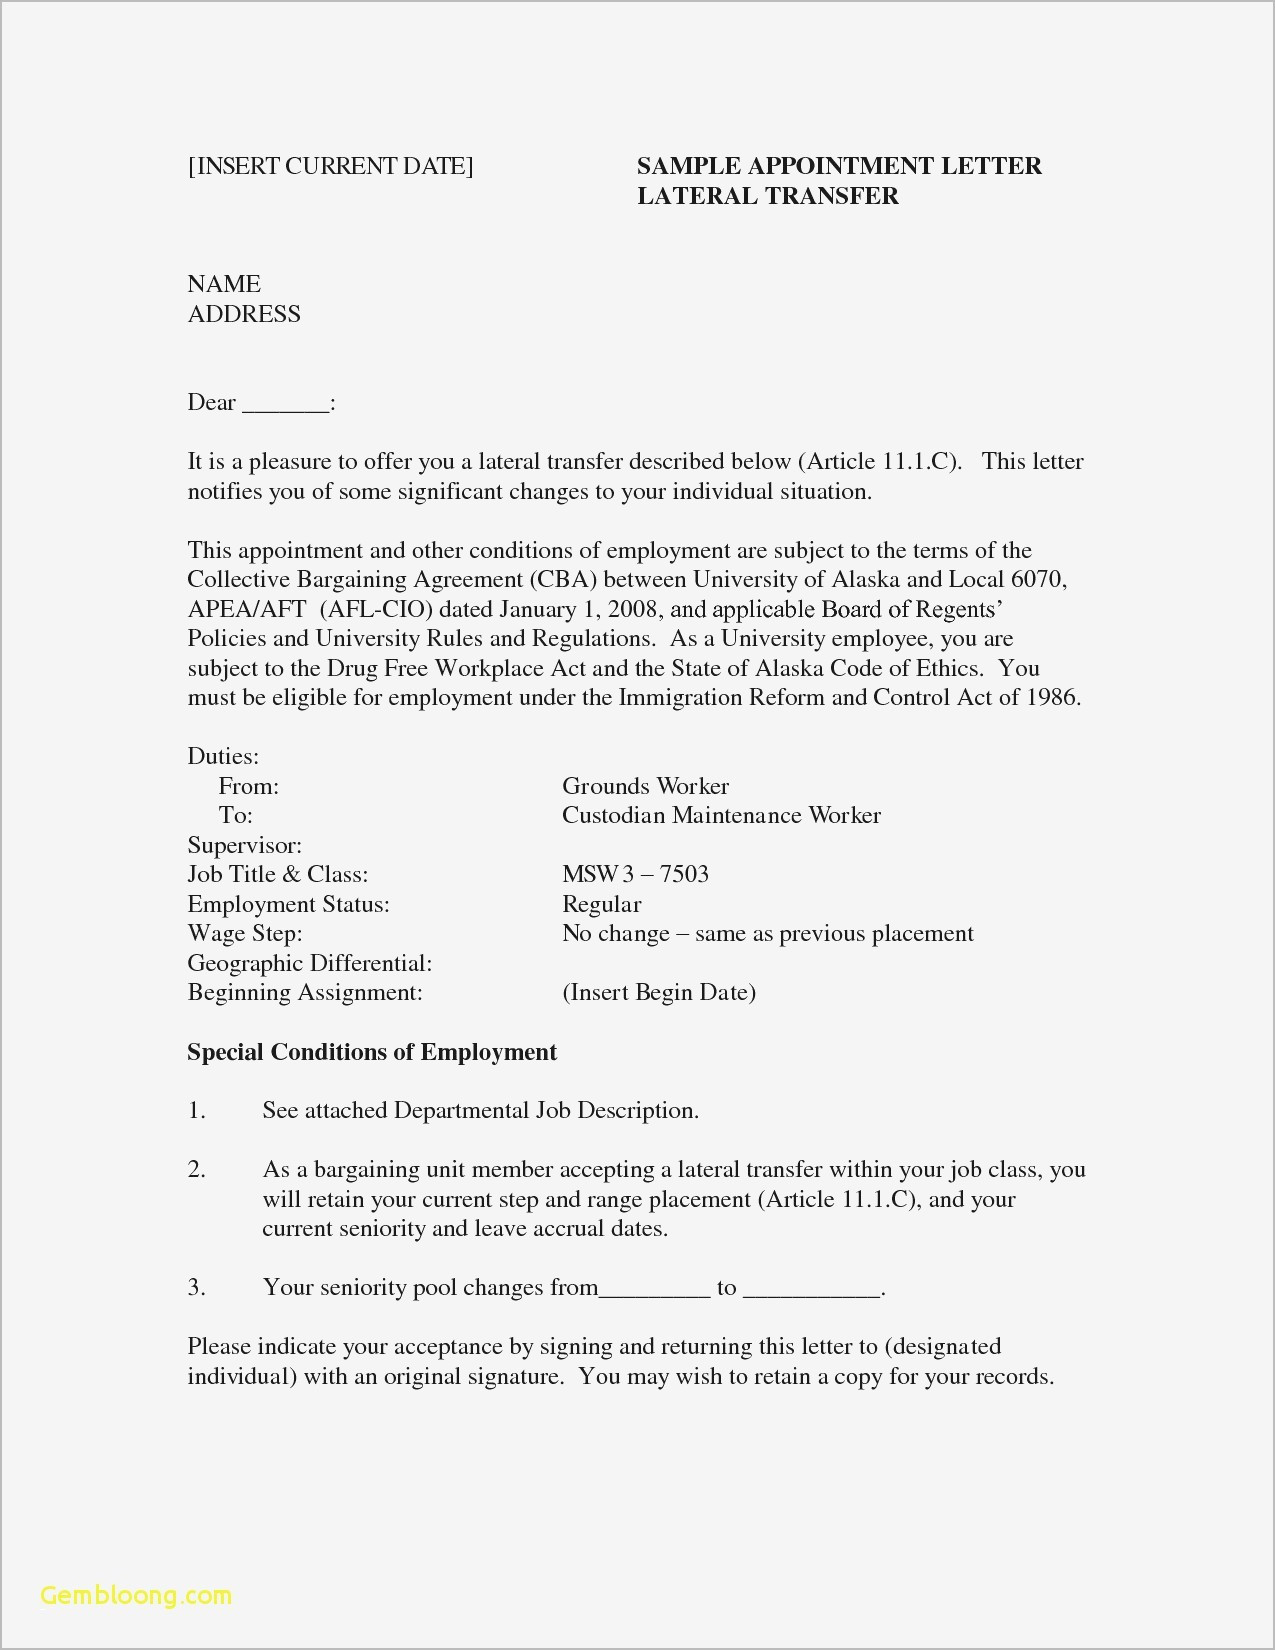 Resume Template Chronological - Sample Chronological Resume format Free Downloads Best Actor